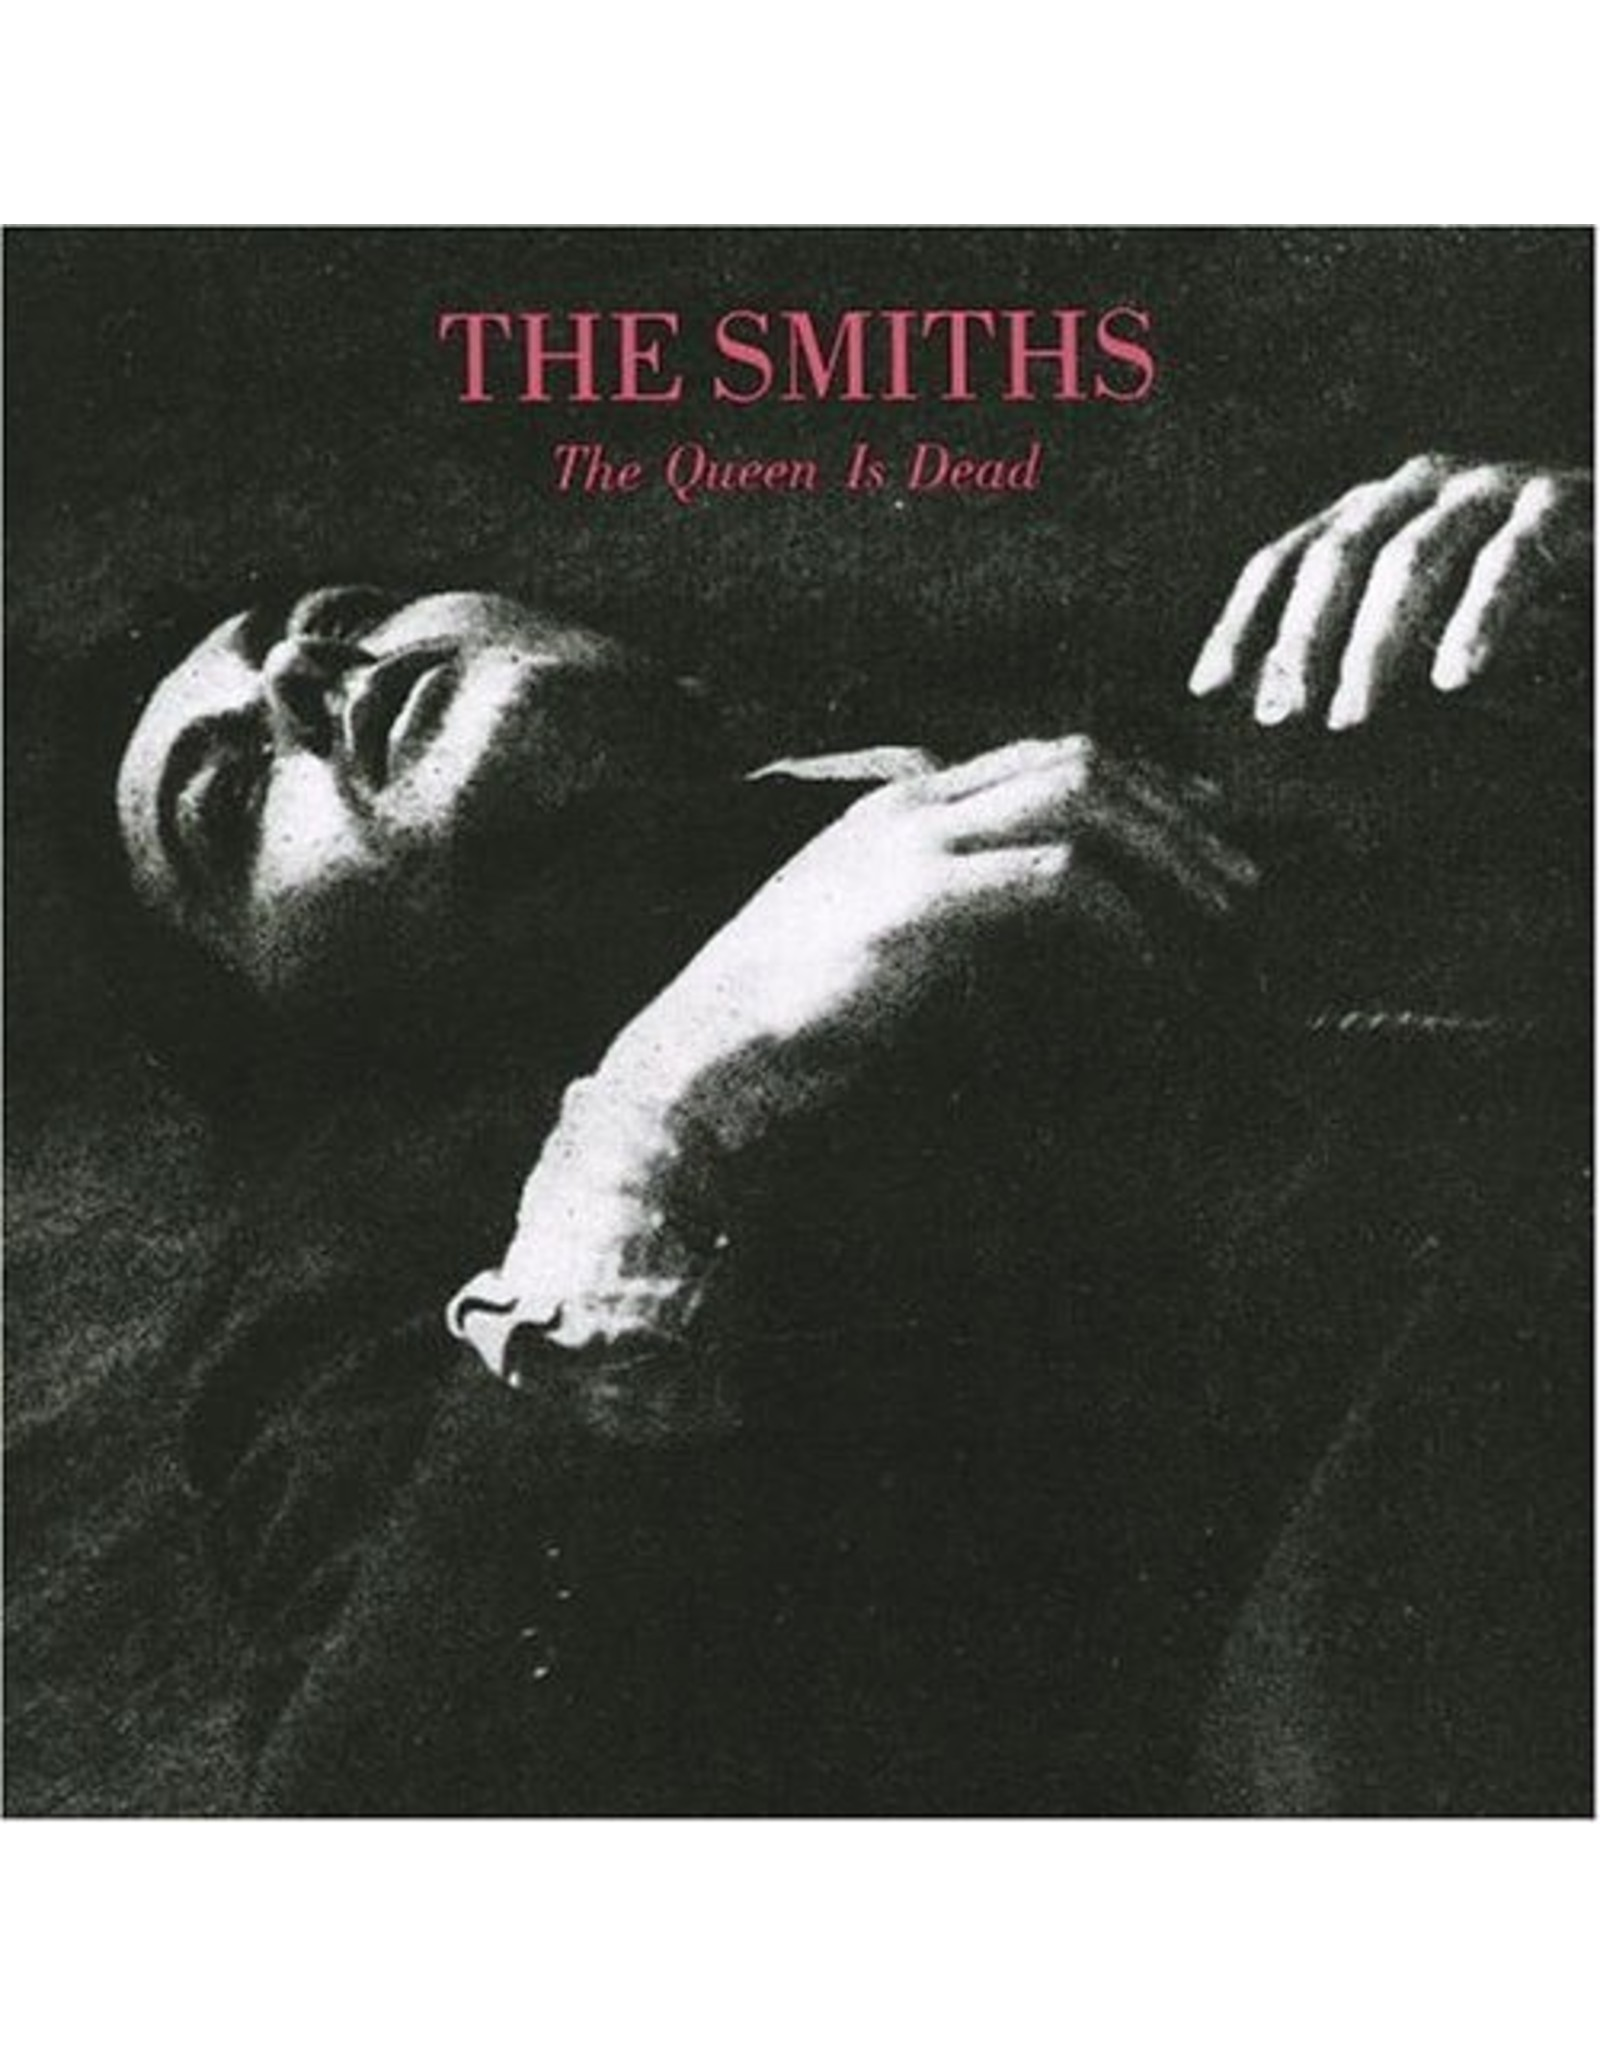 New Vinyl The Smiths - The Queen Is Dead (UK Import) LP